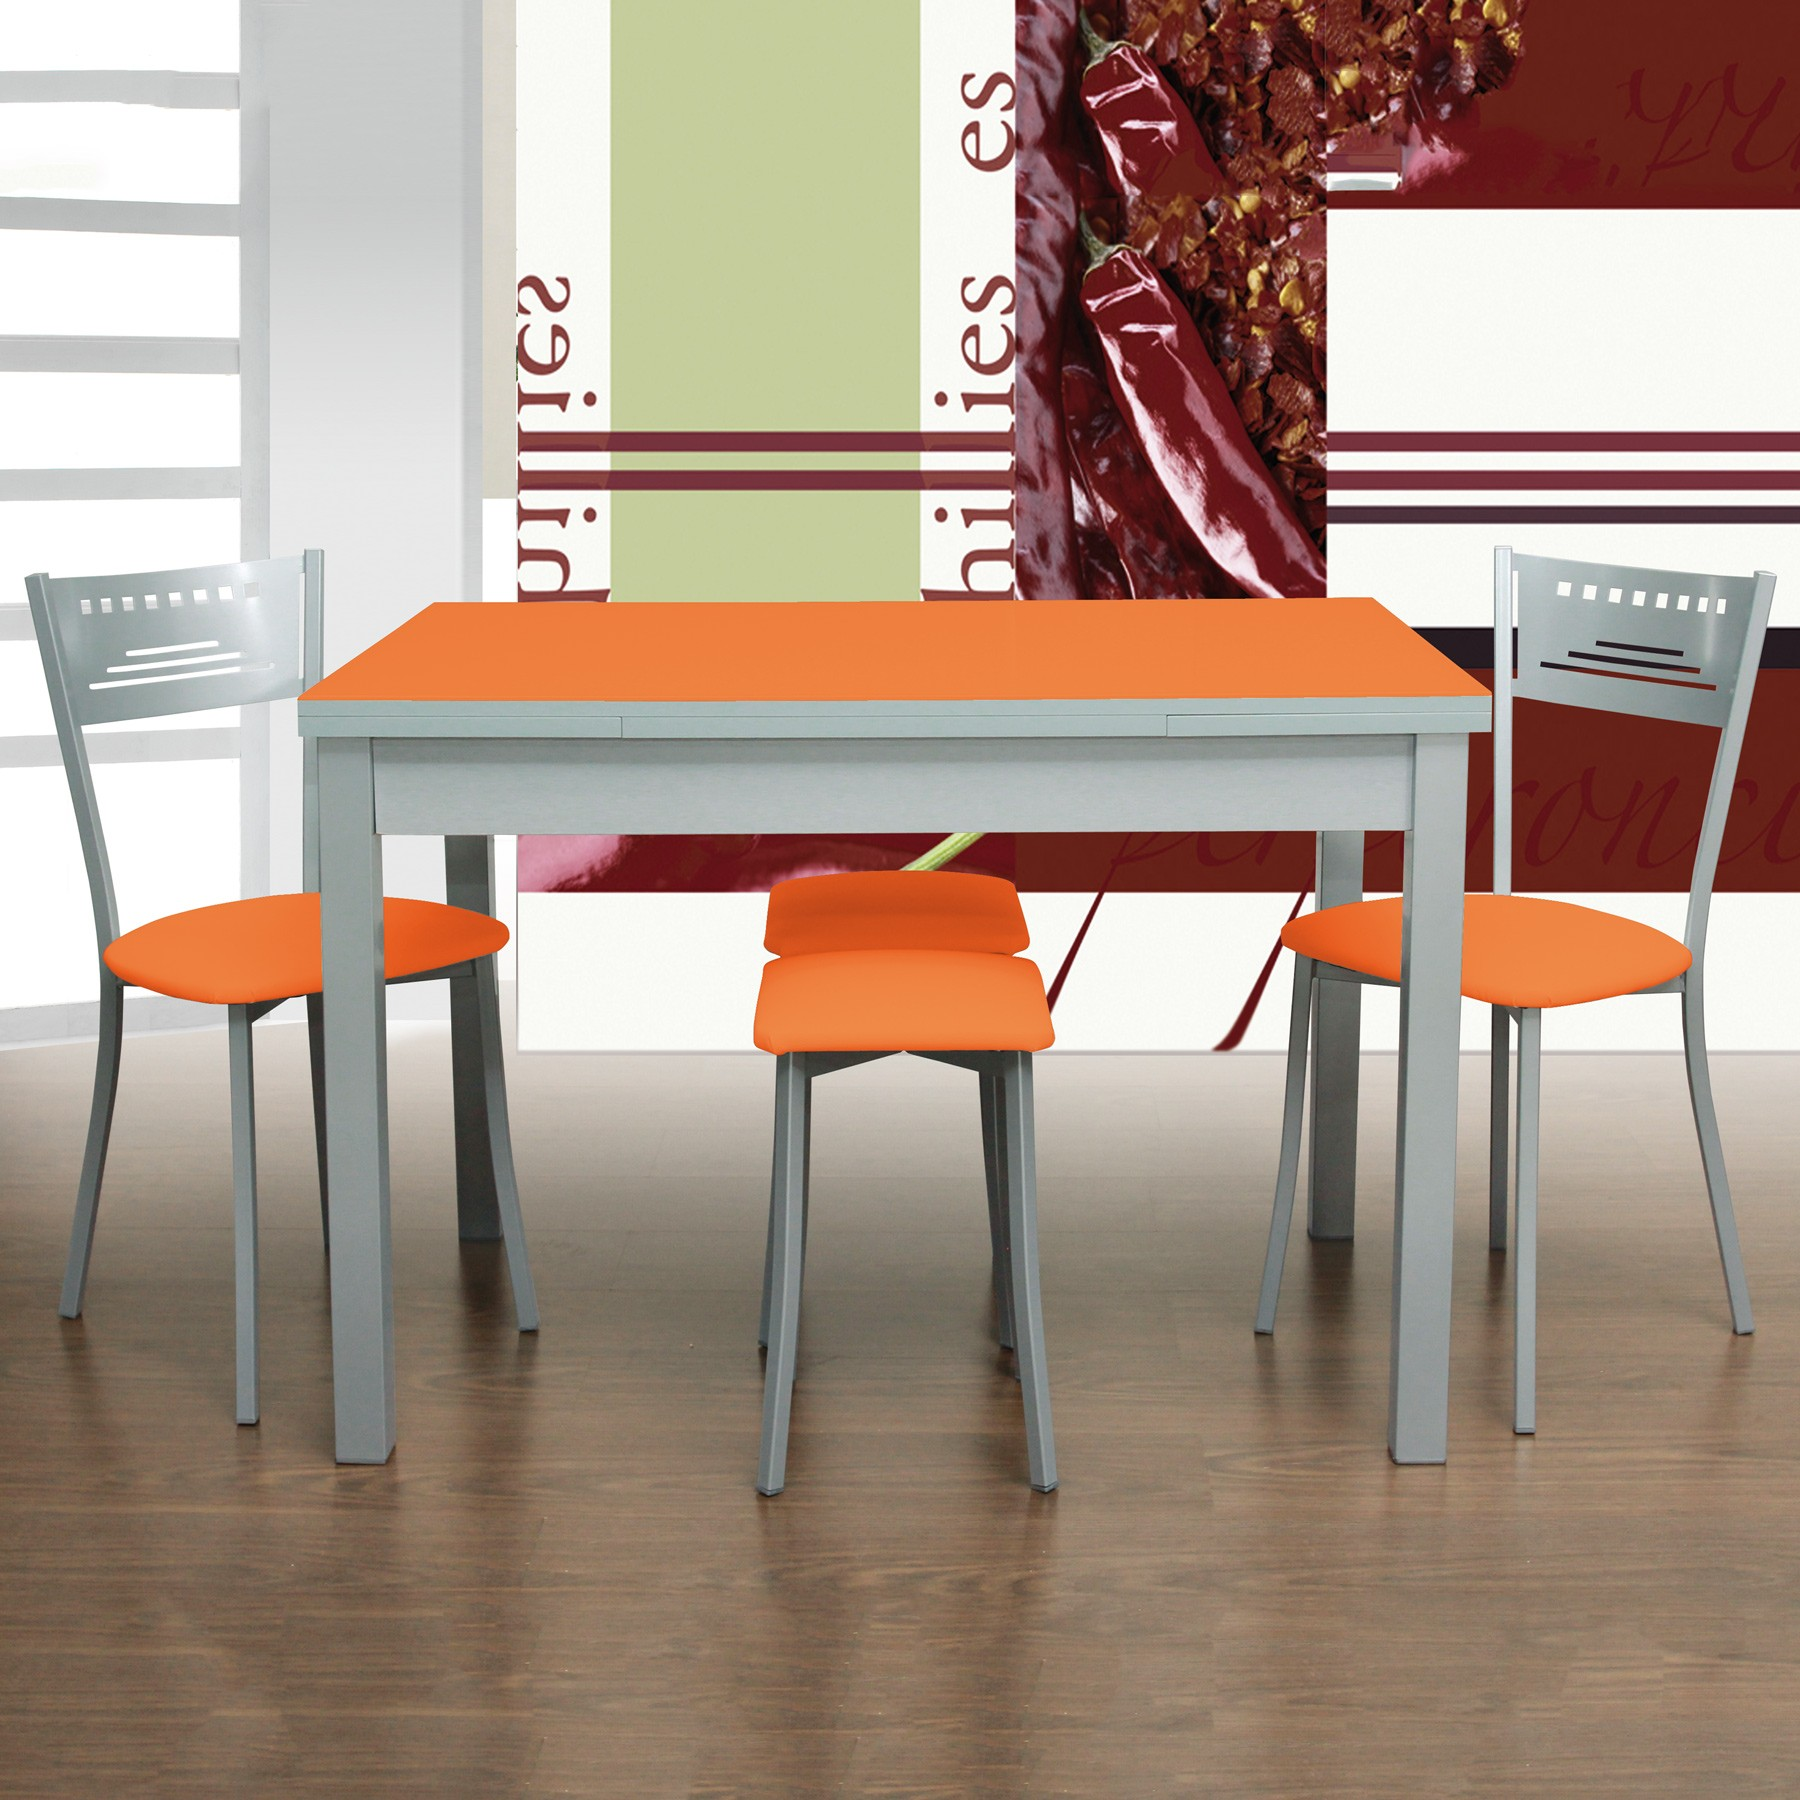 Pack mesa de cocina sillas y o taburetes mod orange for Mesas de cocina economicas